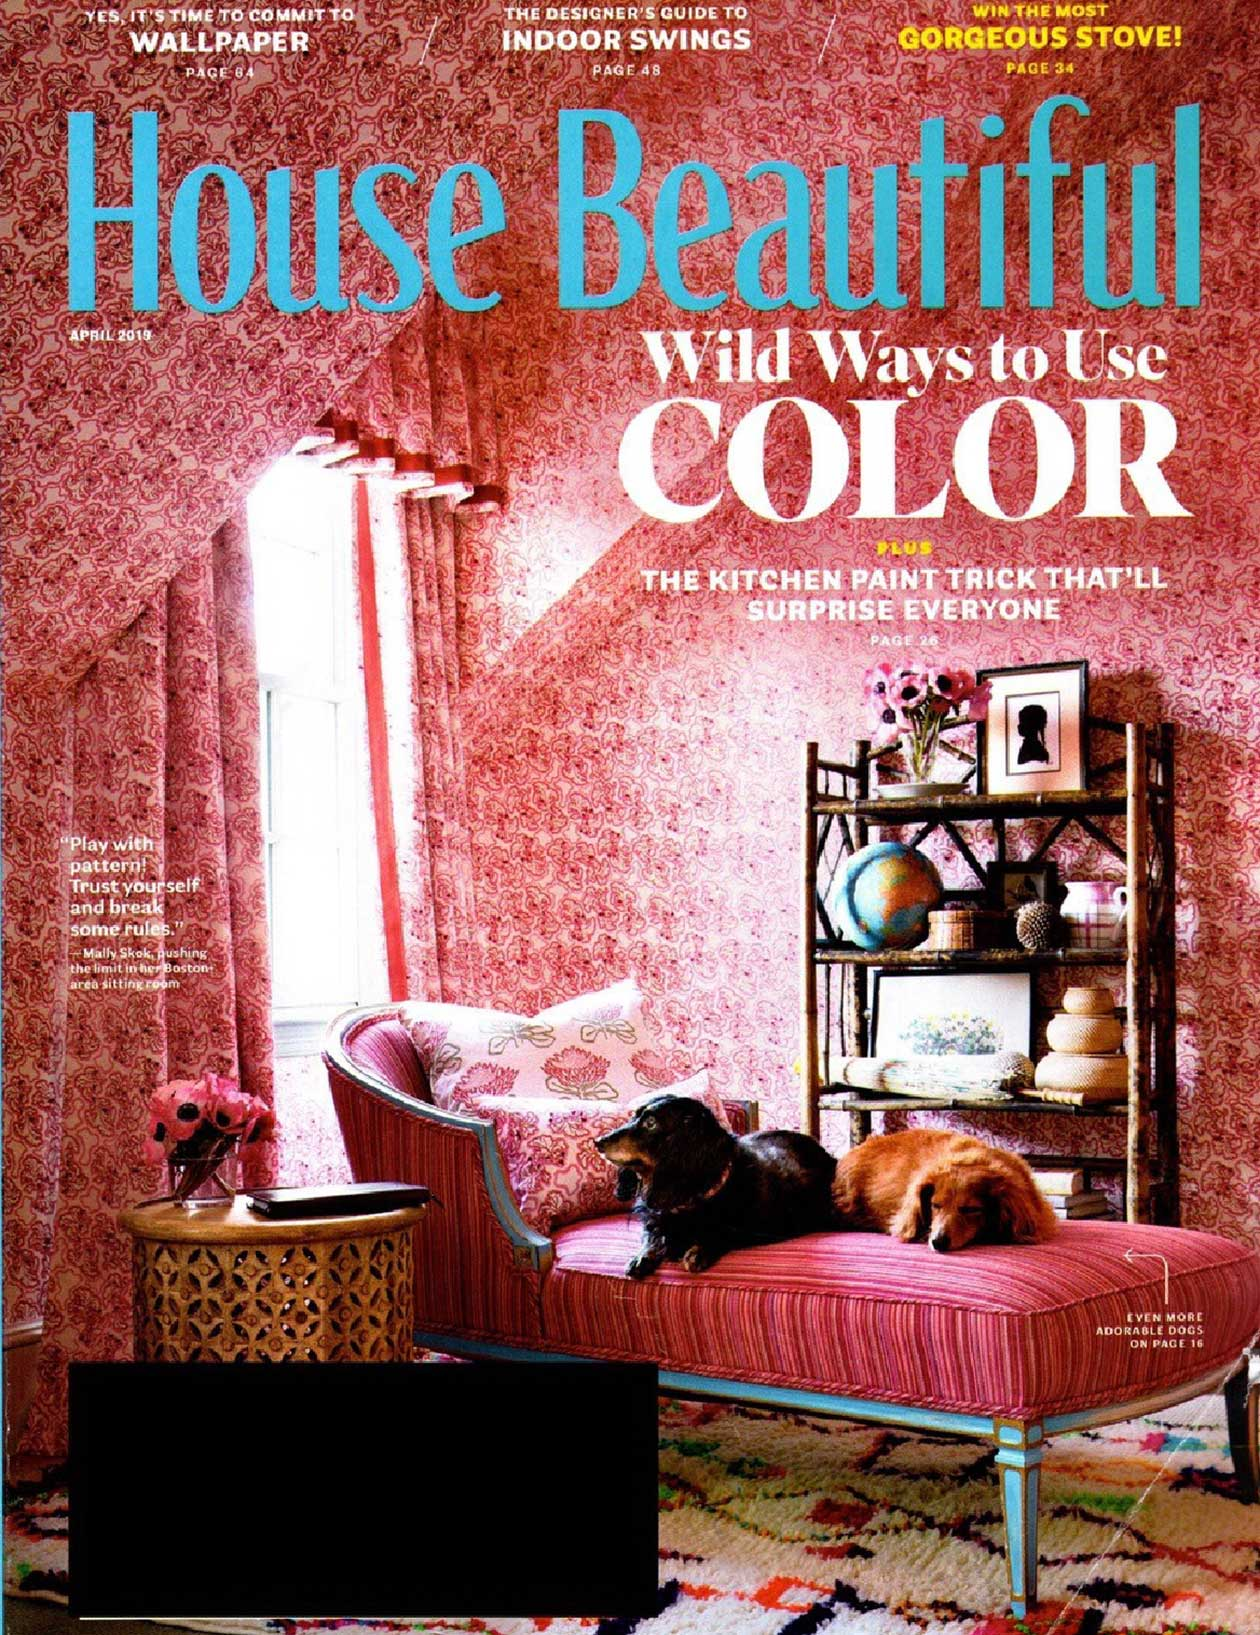 House Beautiful, 1 of 2